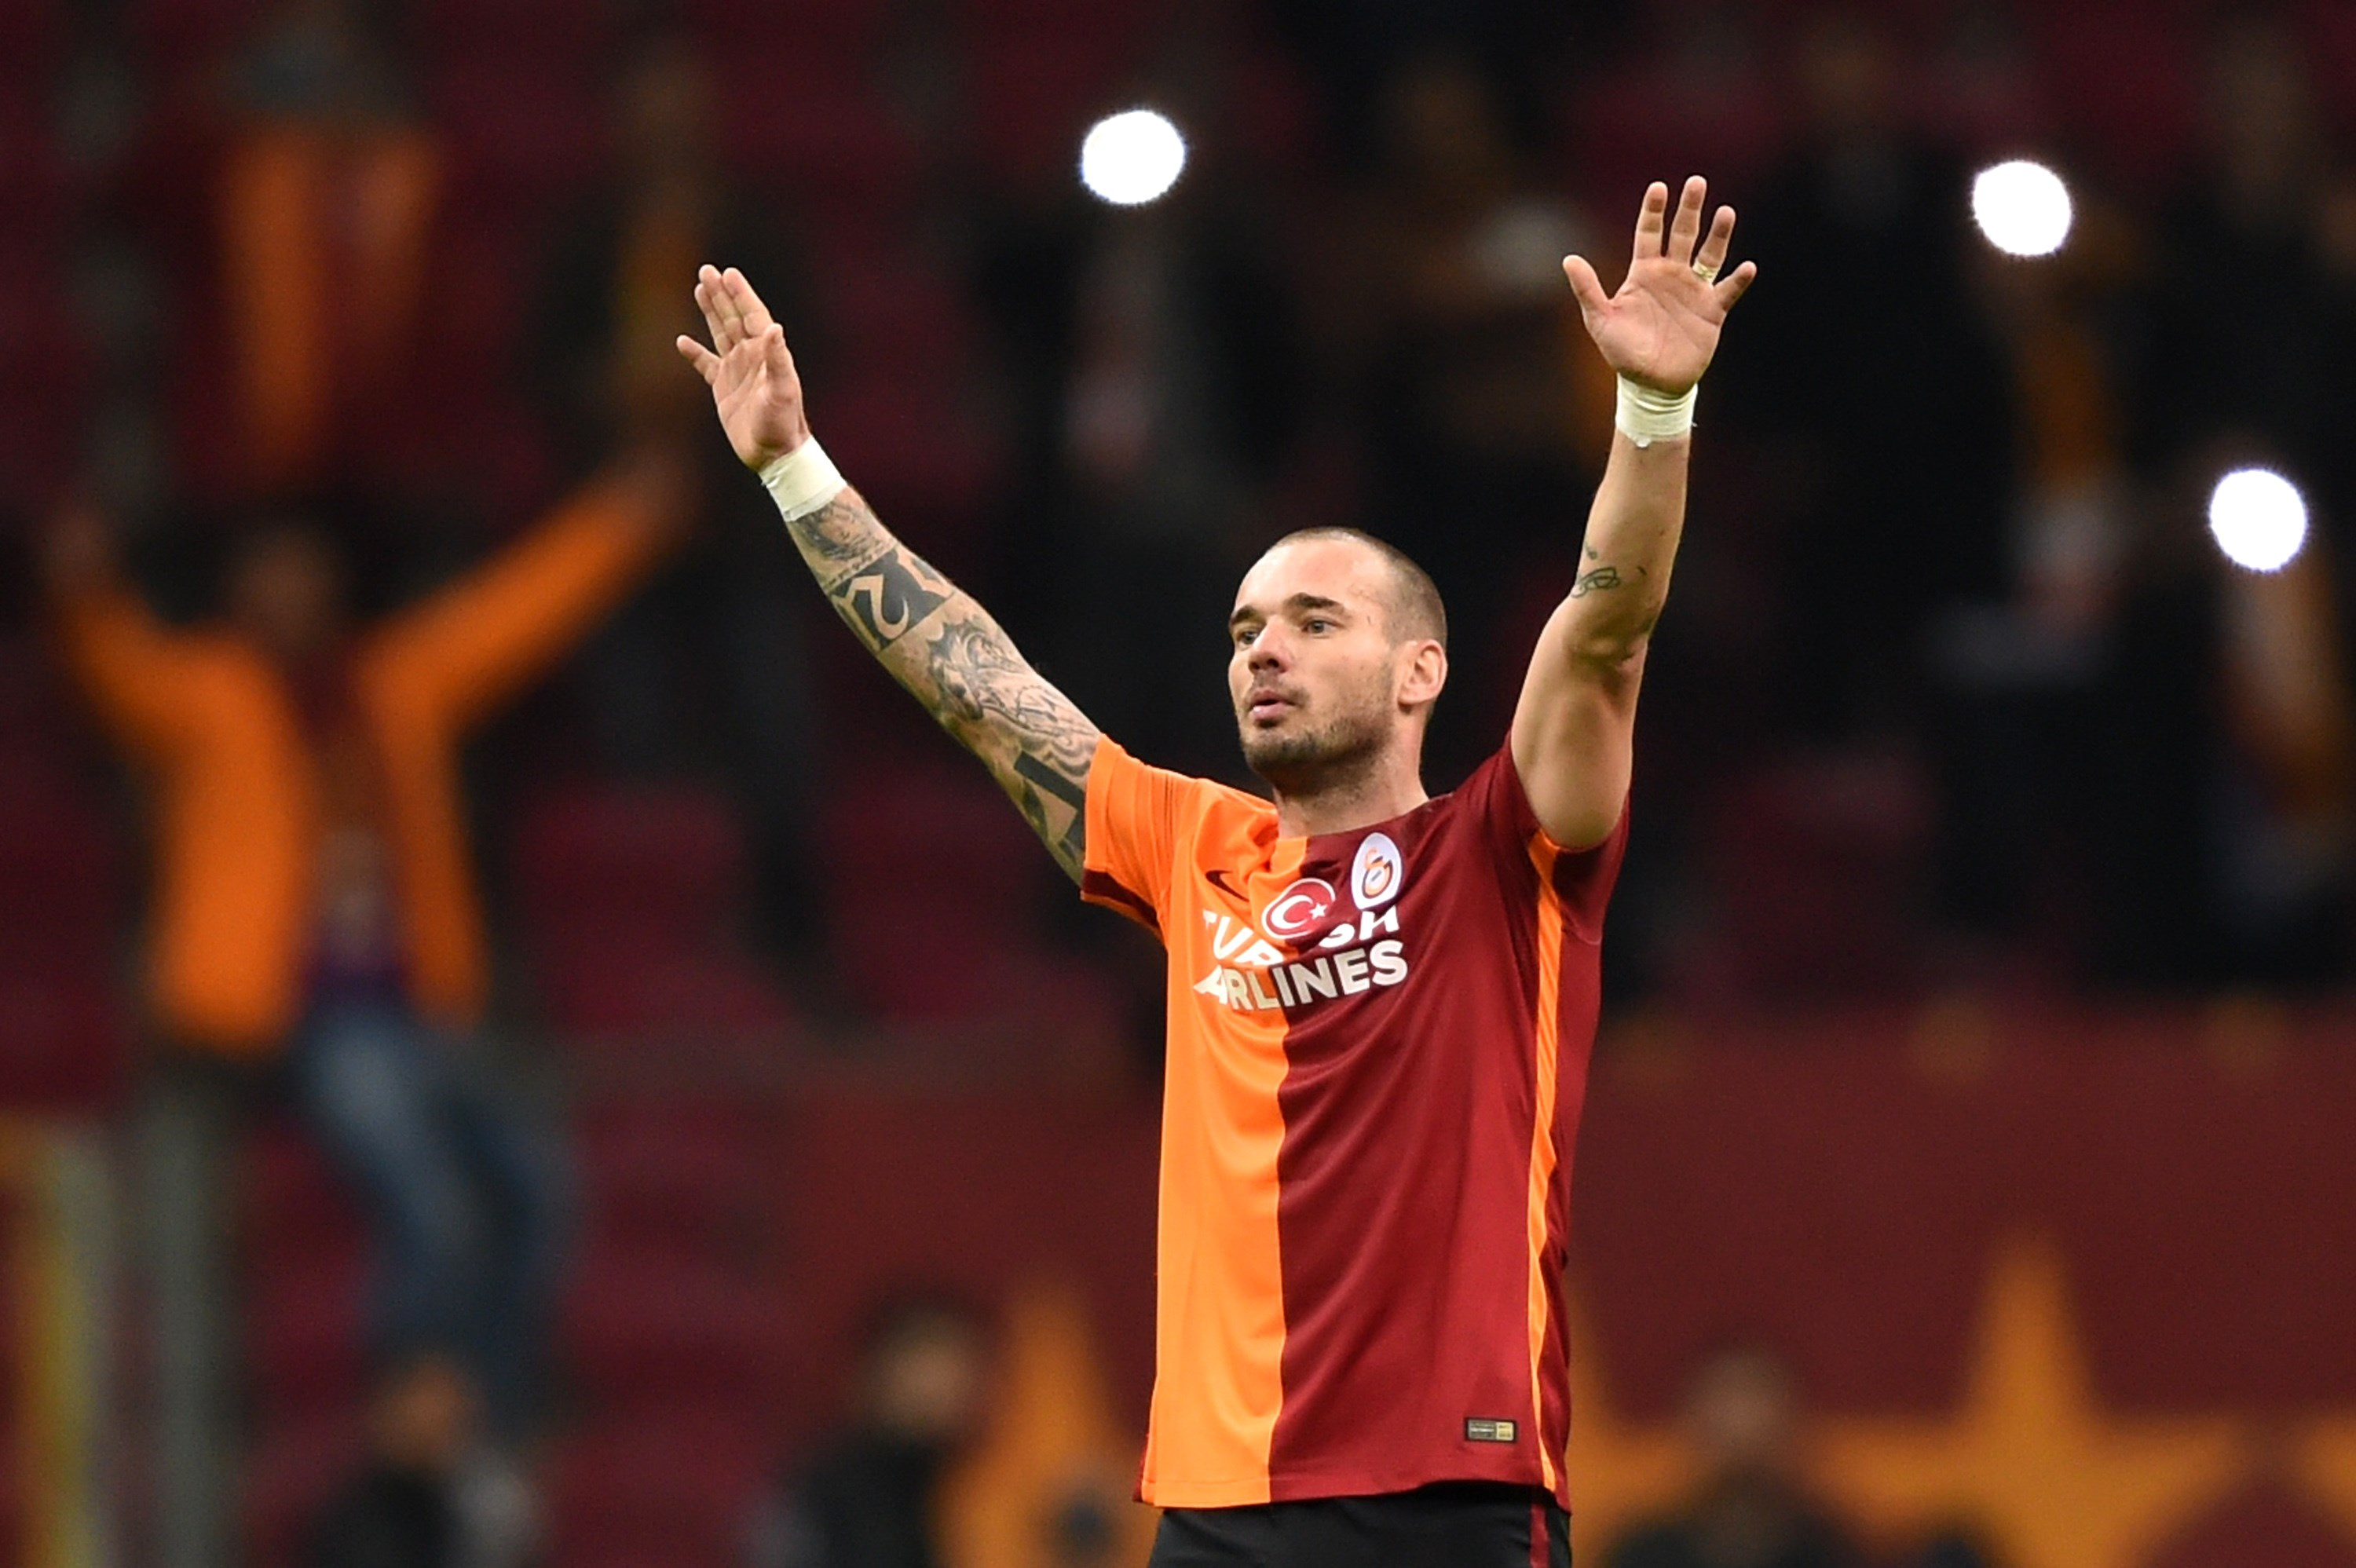 Transfer news: Manchester United could sign Wesley Sneijder, Arsenal scout Ante Budimir, Liverpool want Neven Subotic or Joel Matip – reports